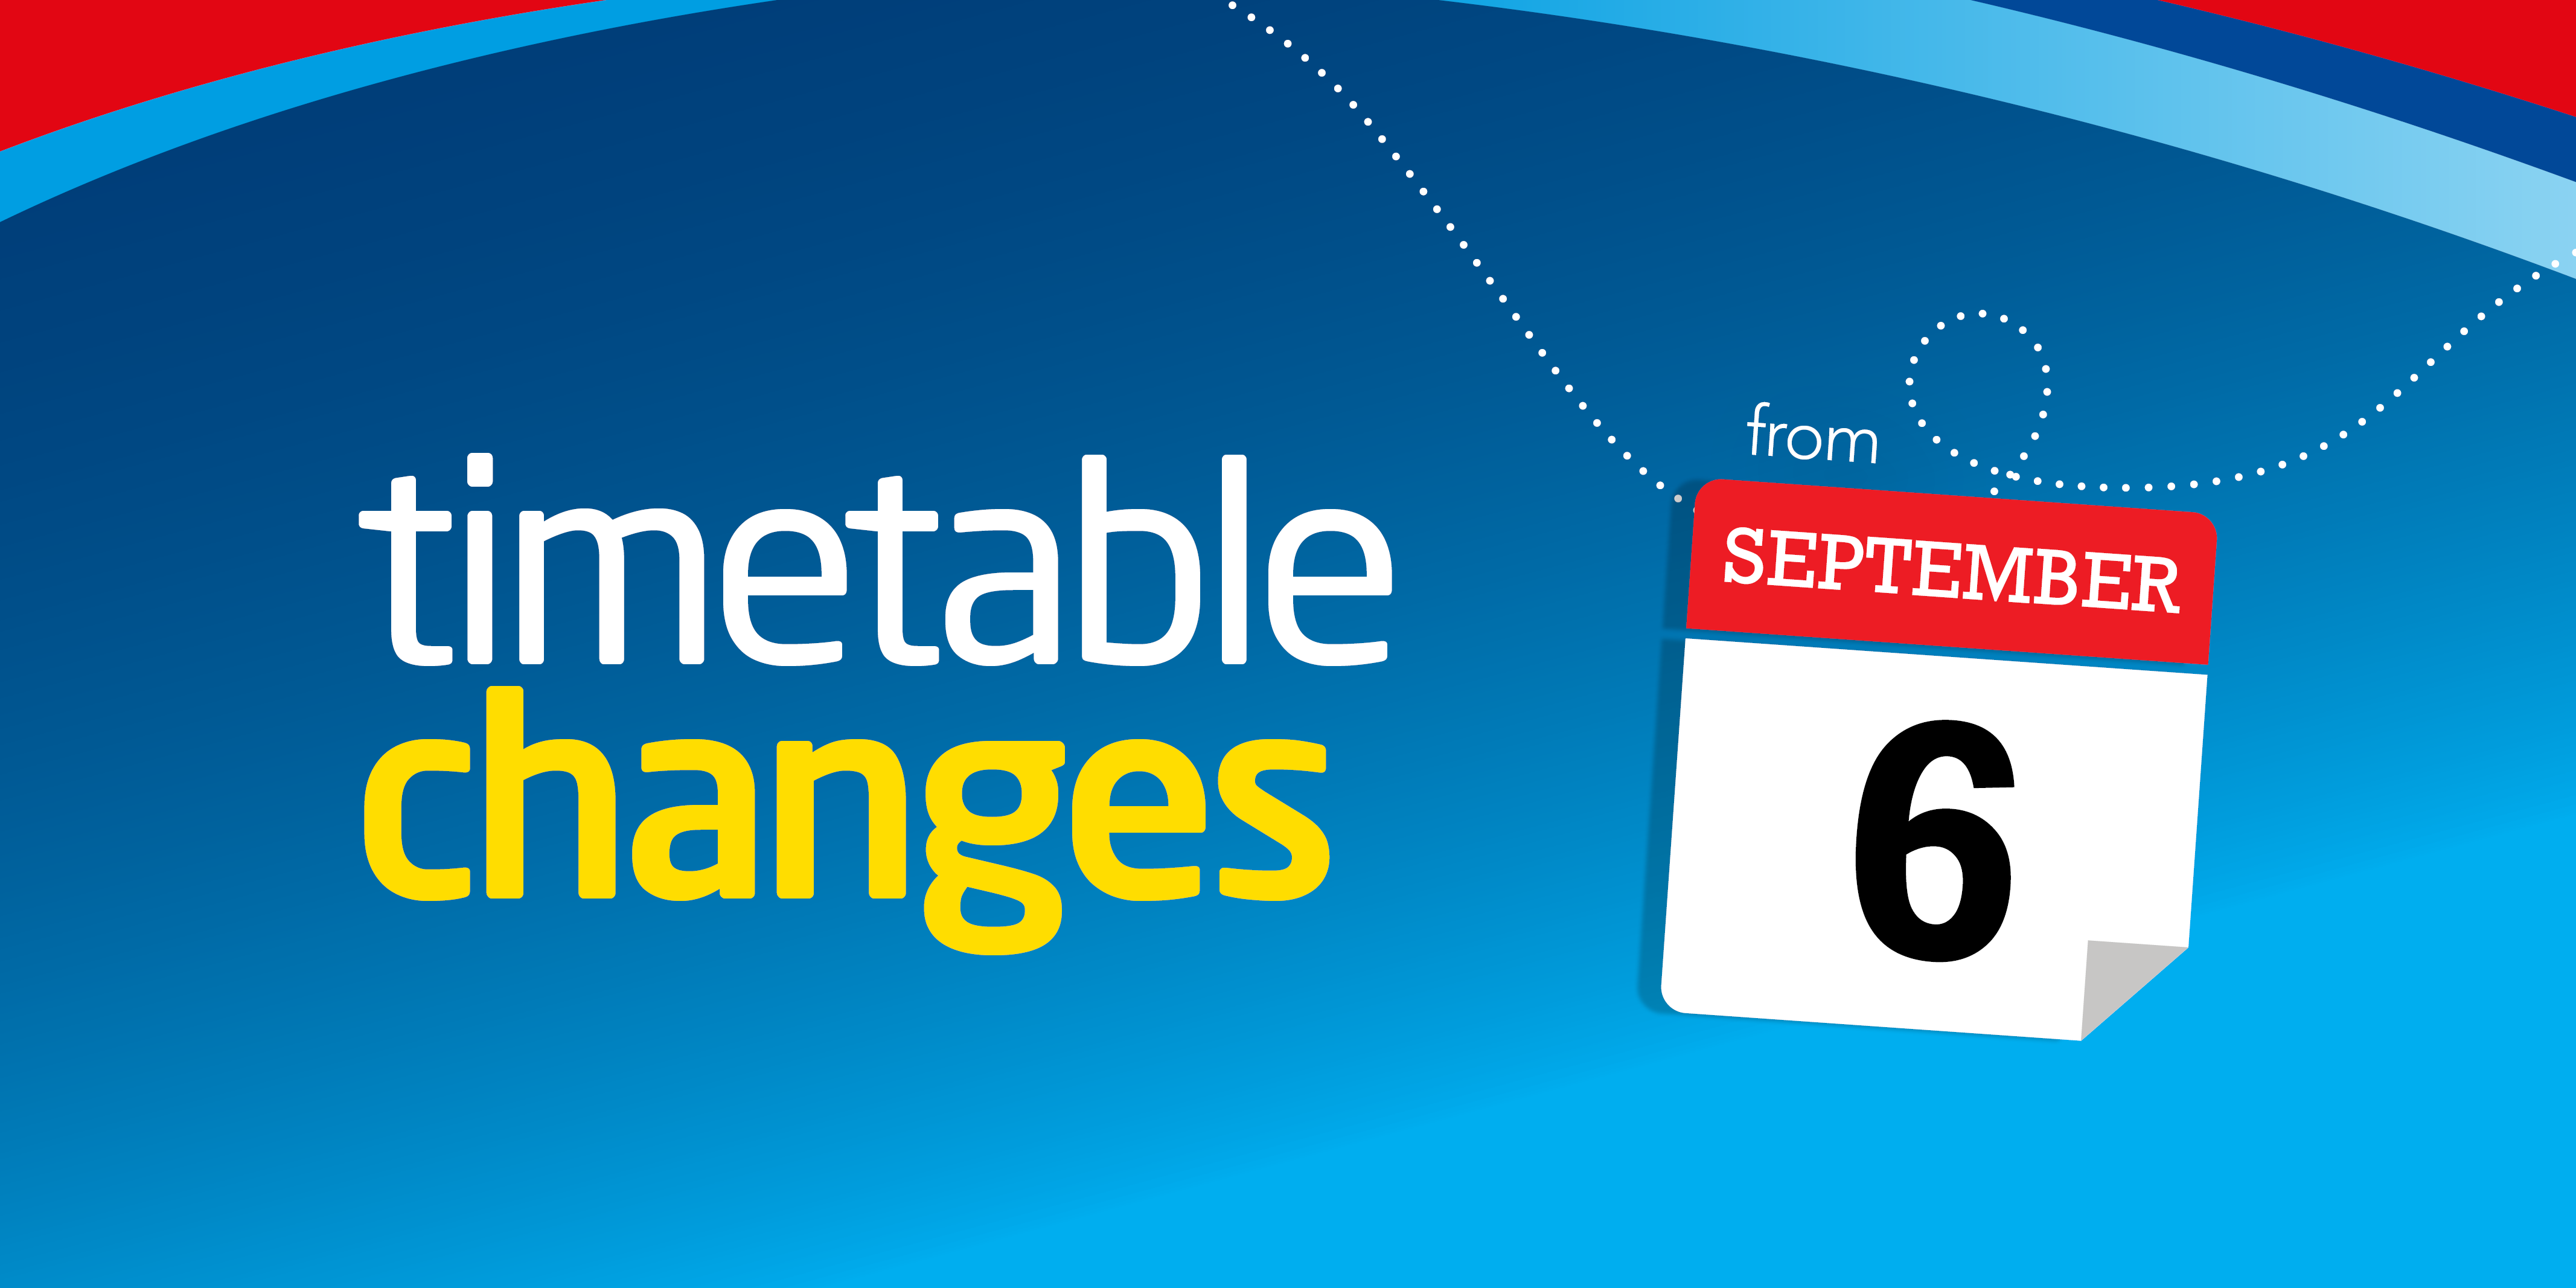 Image saying 'timetable changes from 6th September'